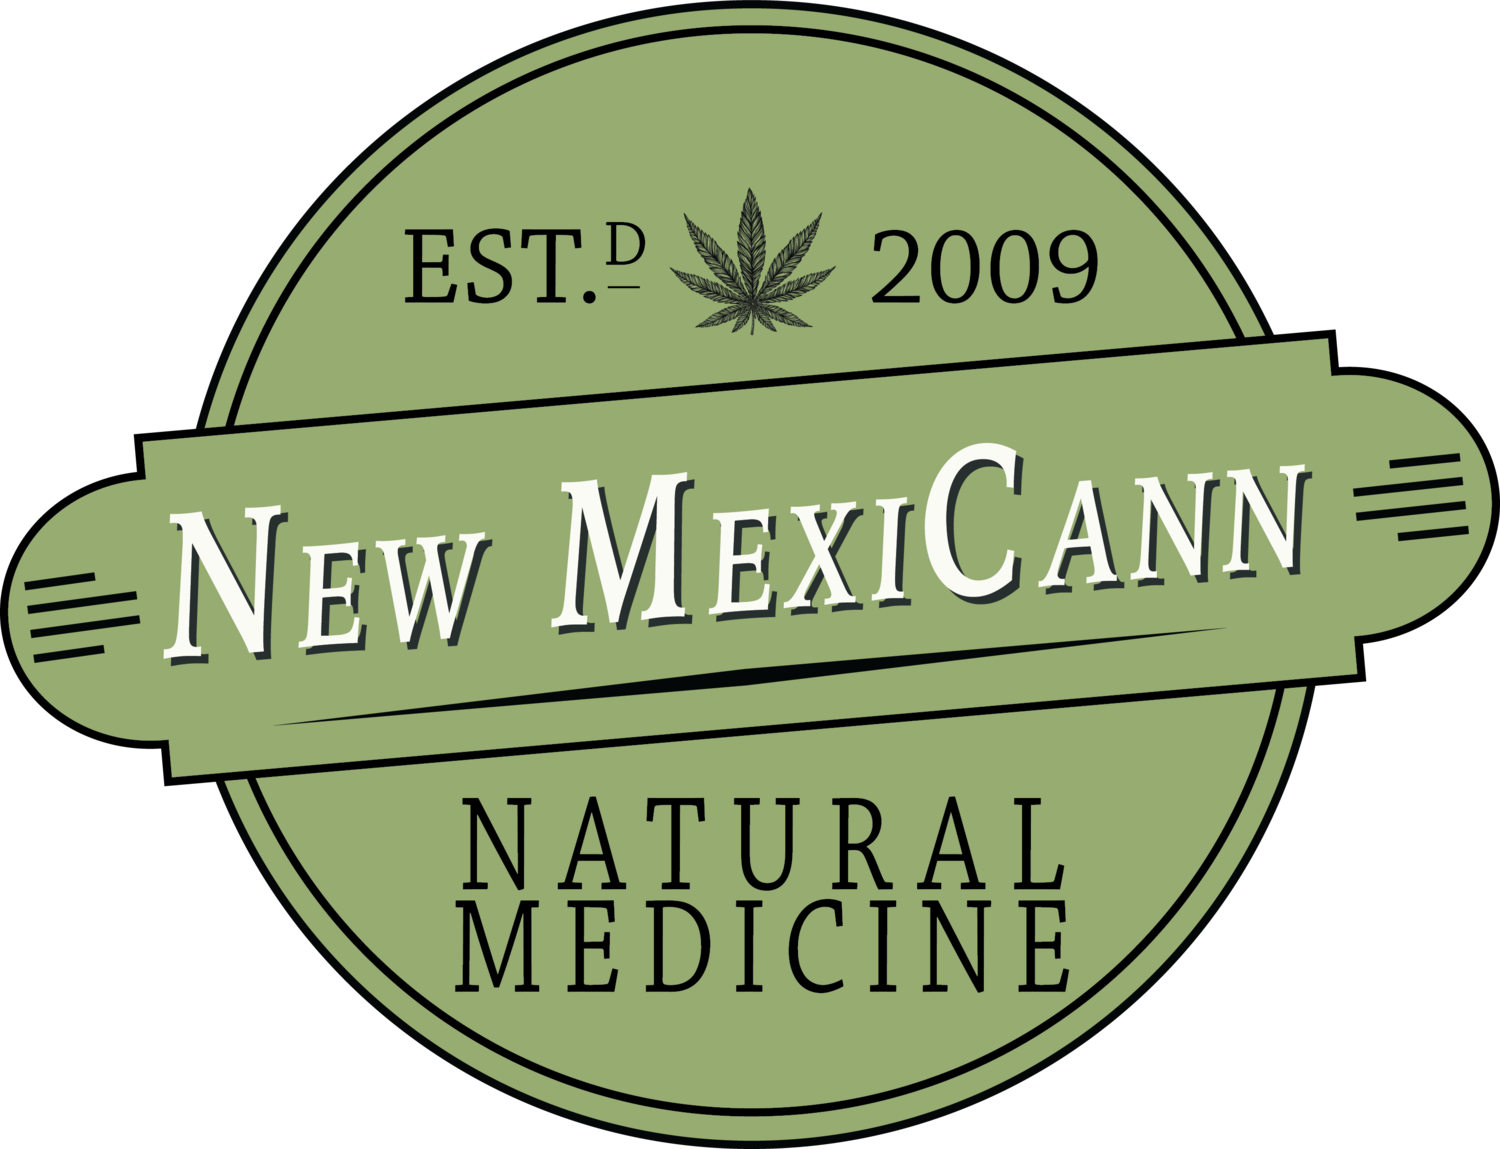 New Mexicann Natural Medicine